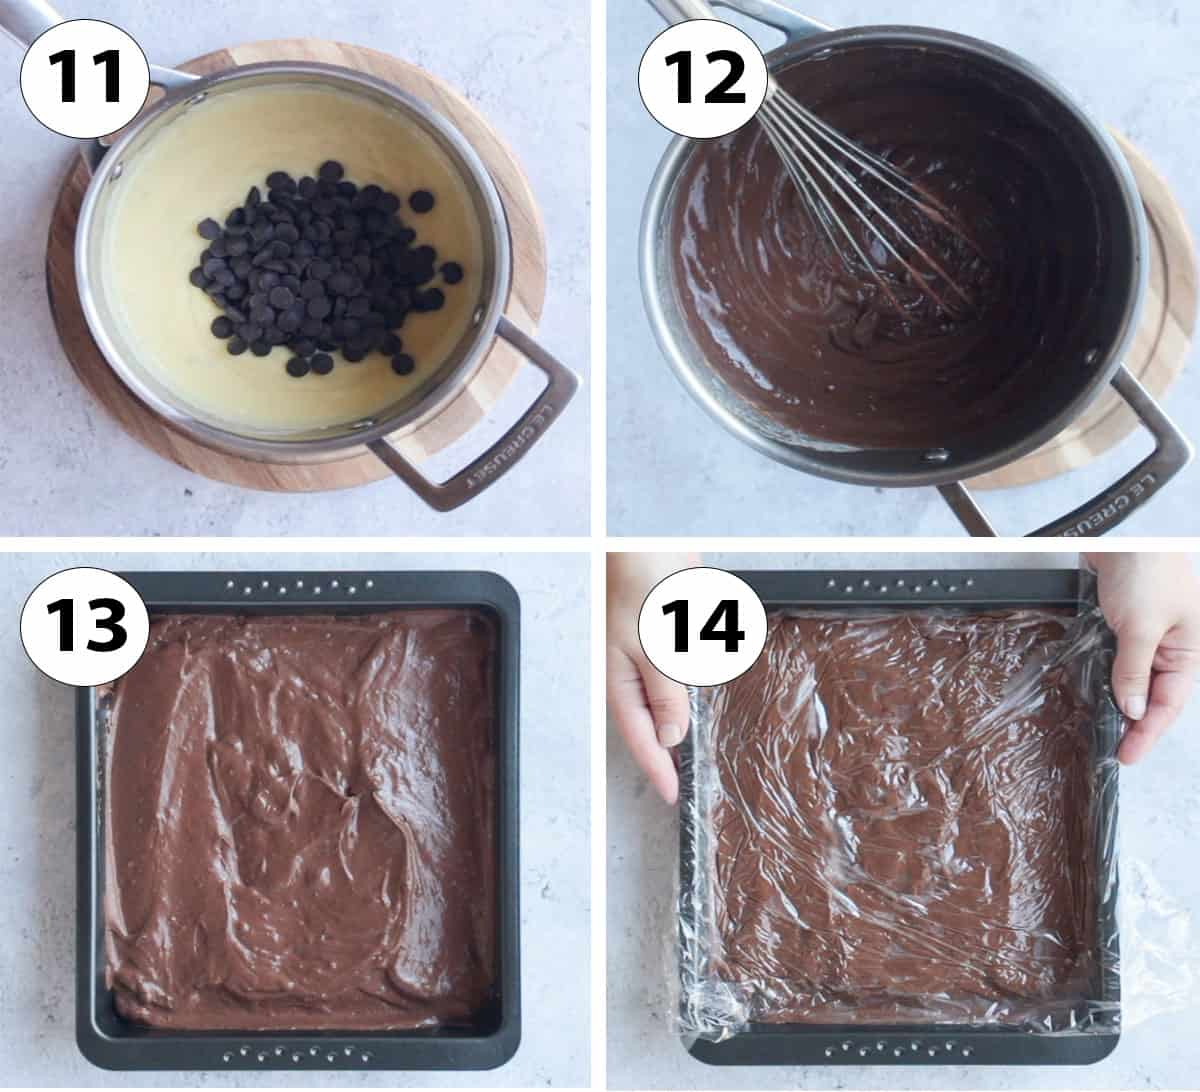 Process Shots: adding the chocolate and chilling.